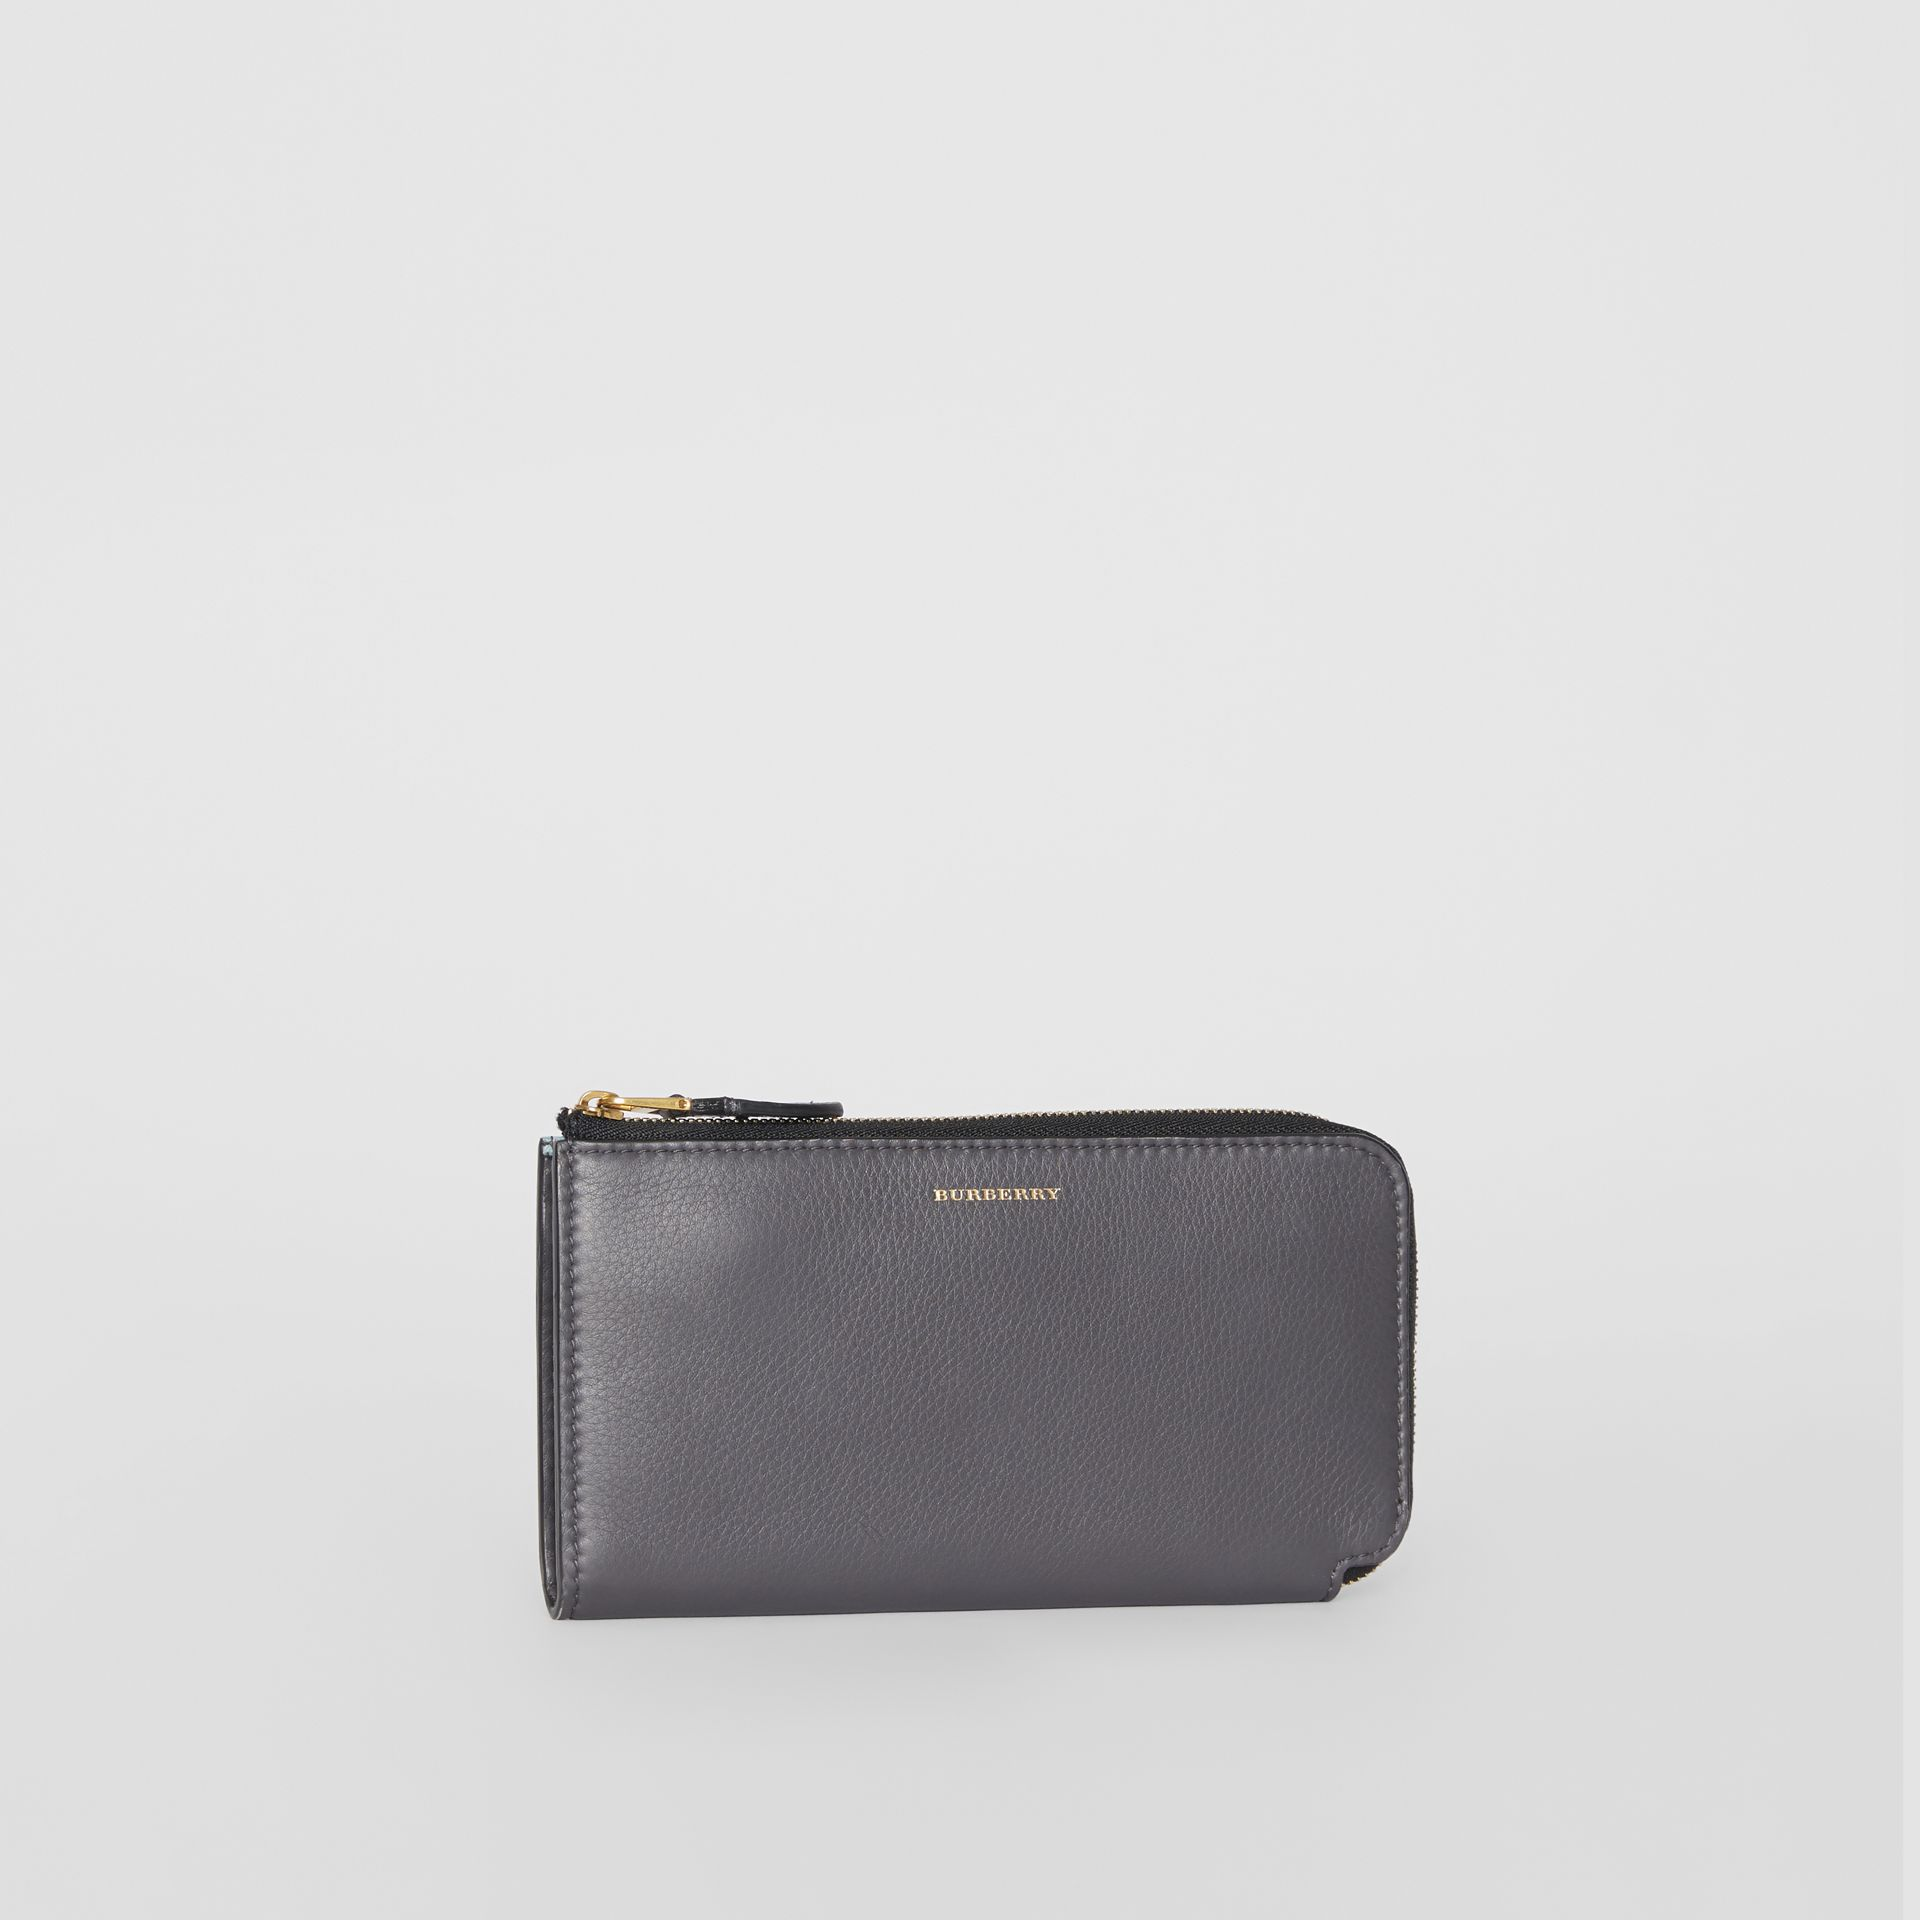 Two-tone Leather Ziparound Wallet and Coin Case in Charcoal Grey - Women | Burberry - gallery image 5